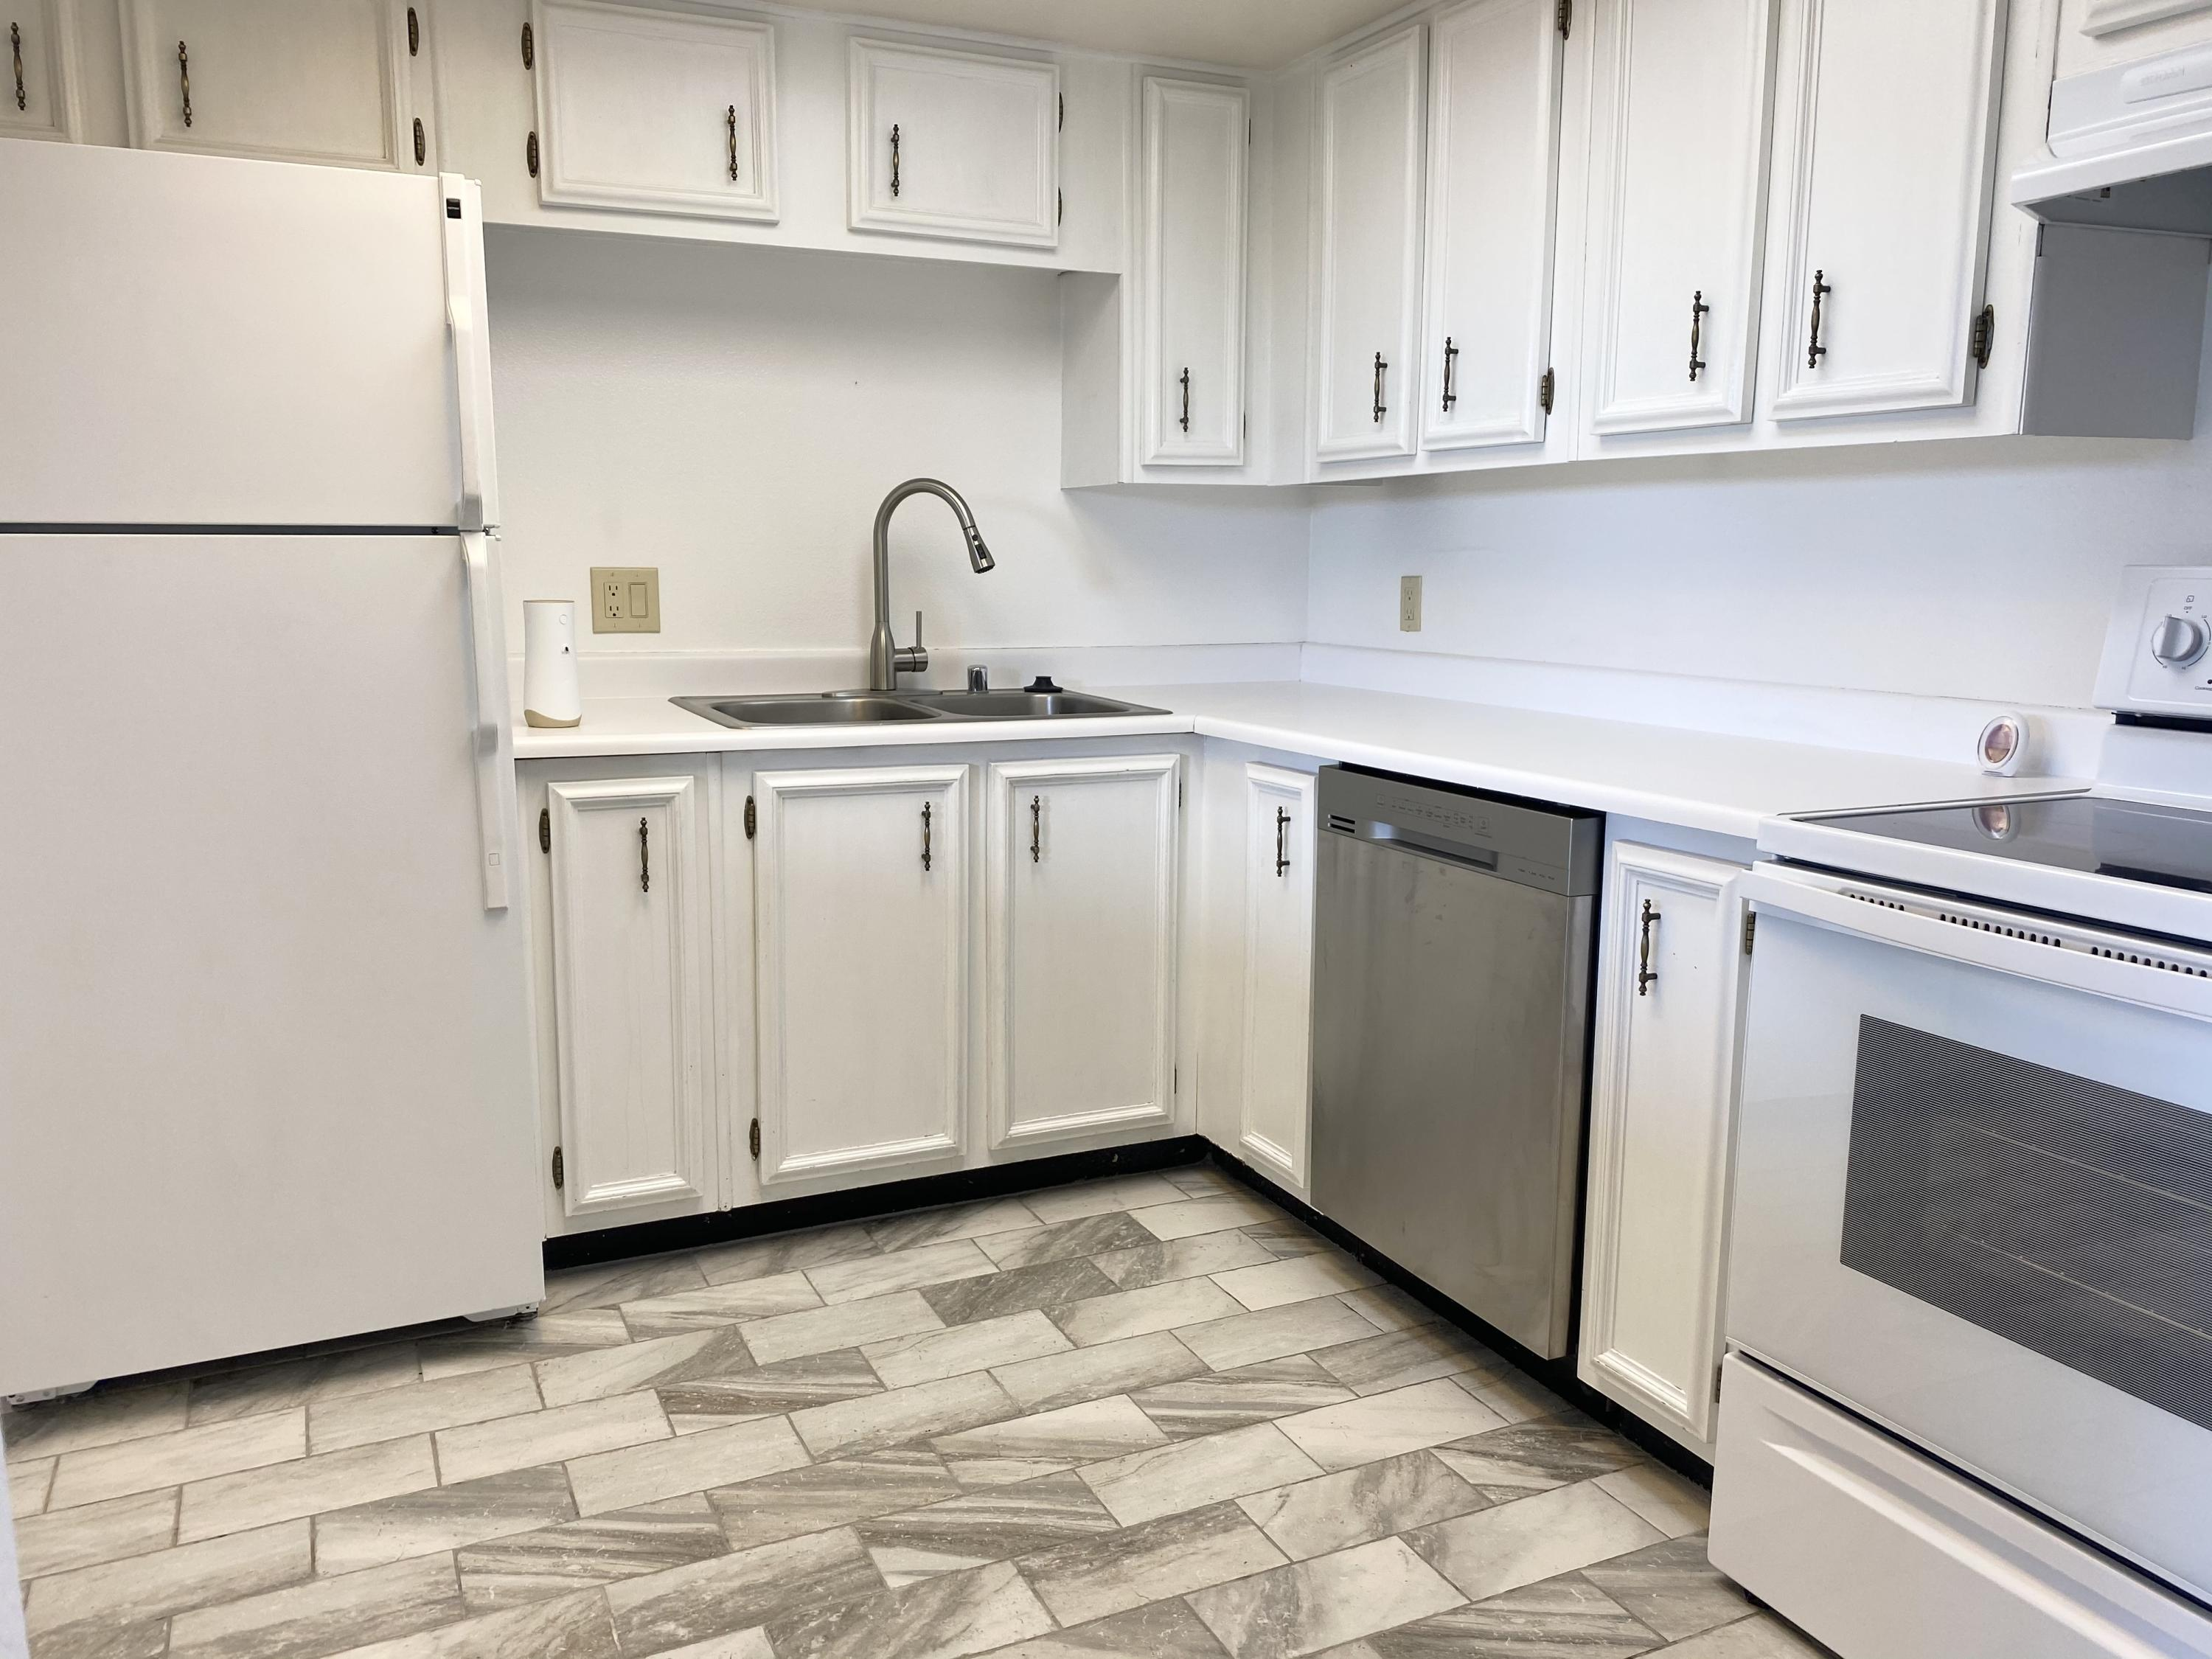 Super cute condo in the heart of Rio Rancho, located near shopping and access to all the main roads.  Come view this 2 bedroom well maintained condo.  Bright and white the kitchen is open to the dining and living areas opening up the living space to the back closed in patio.  Newly built fence offers privacy in the patio area but opens to a small bricked patio extension and grass shared yard.  This complex offers a community pool and an HOA that covers the exterior of the residence and some utilities.  Refrigerated air and washer and dryer in the unit these do not last long.